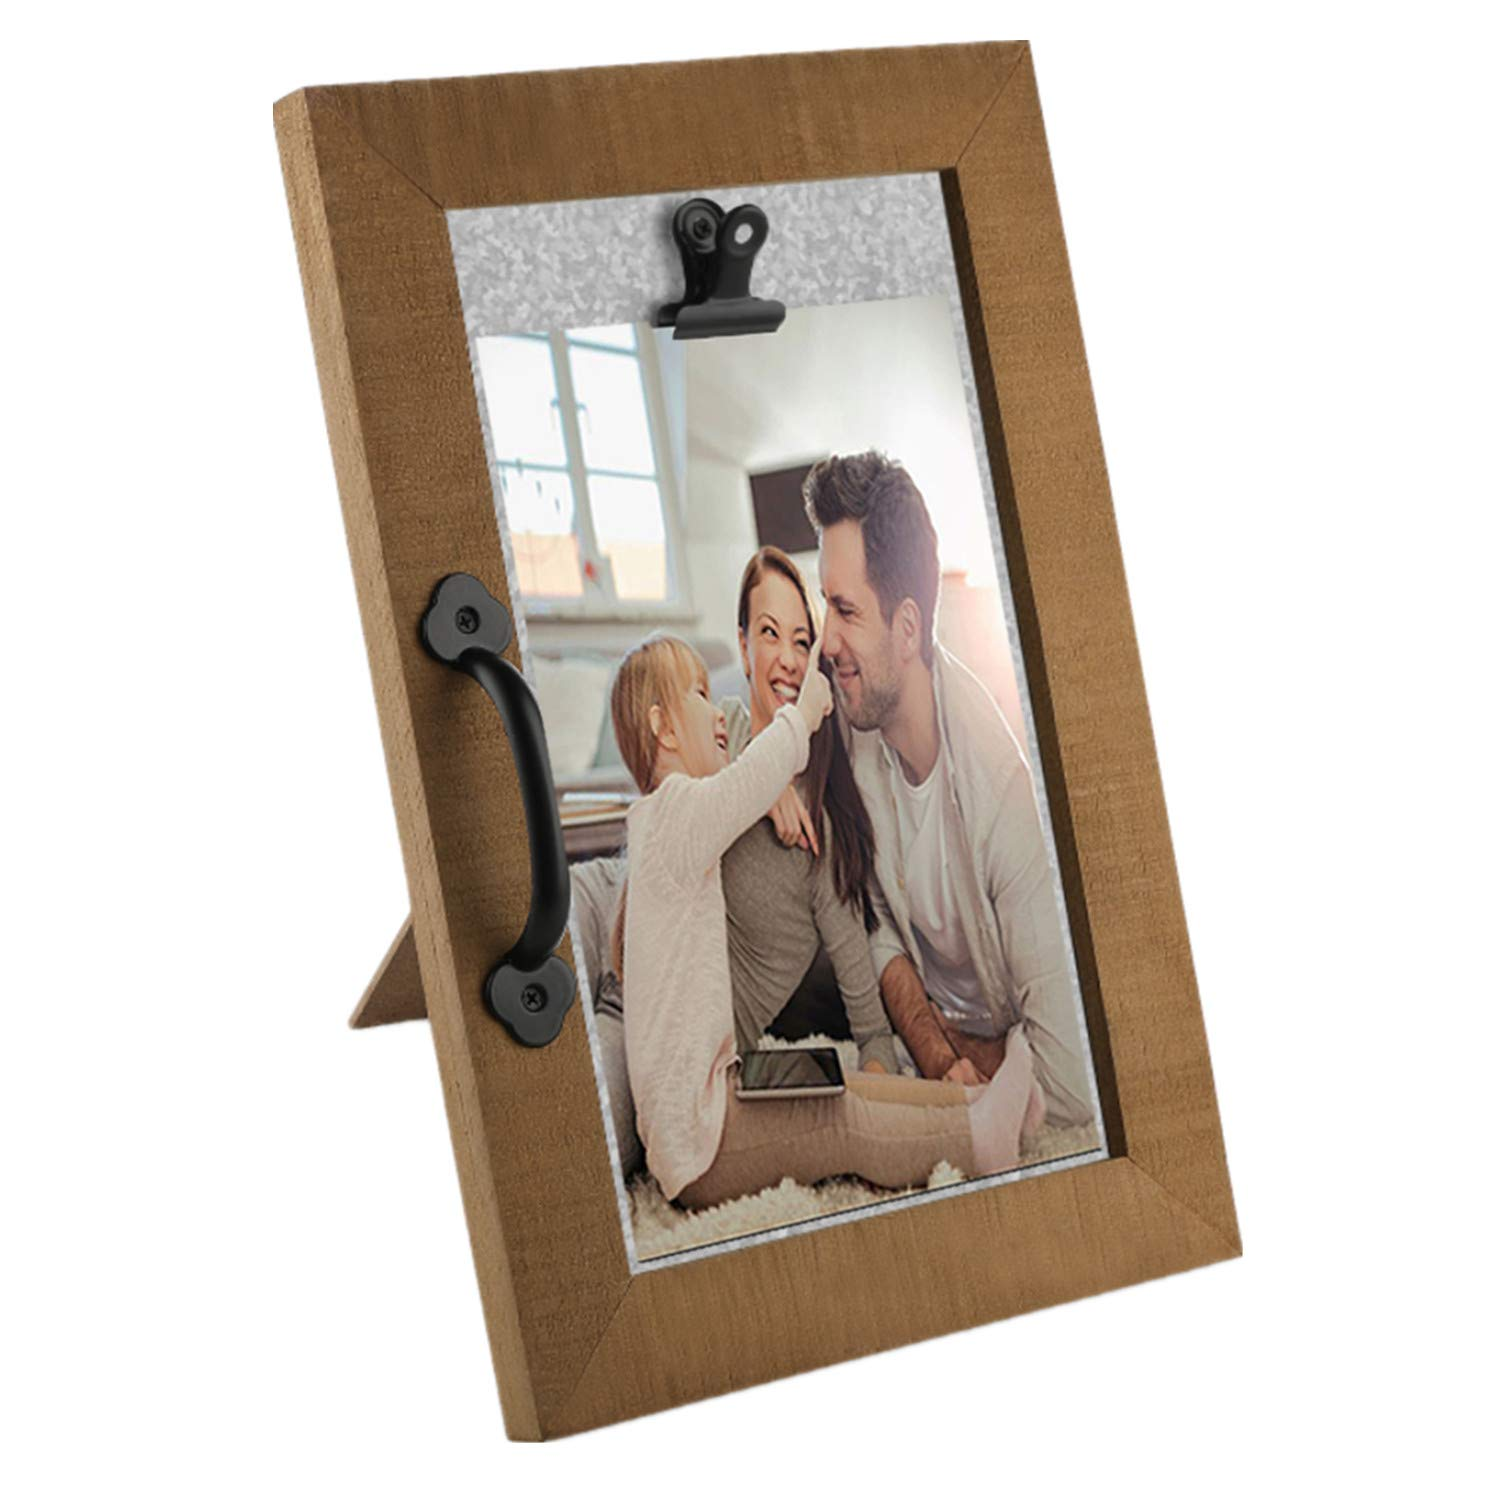 OUCHAN Family Father Mother Momory Picture Frame 4''x 6''- Distressed Photo Frame with Handle for Friends, Father, Mother, Family by OUCHAN